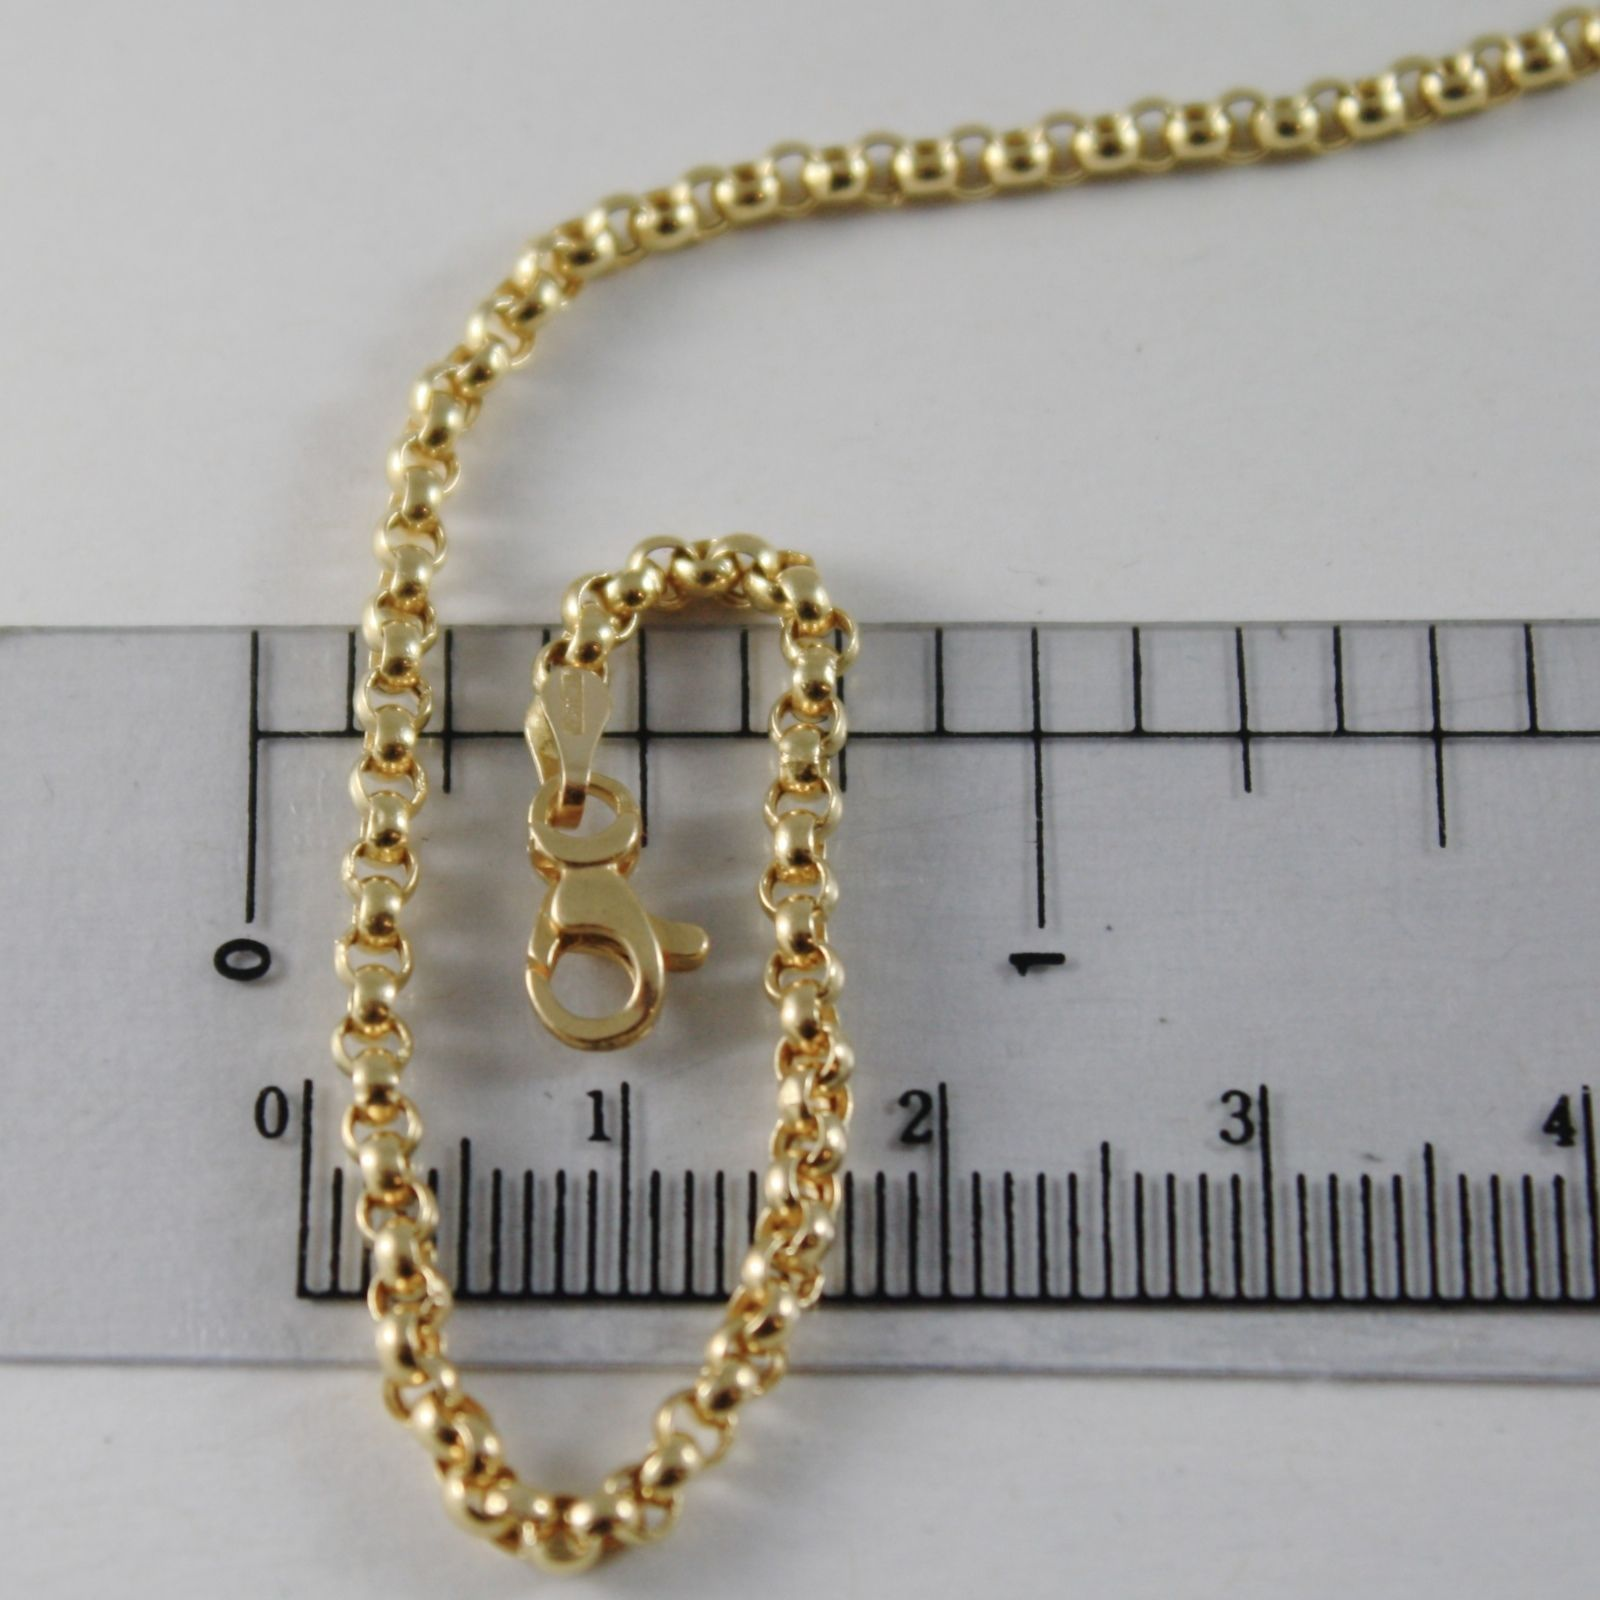 18K YELLOW GOLD CHAIN 23.60 IN, DOME ROUND CIRCLE ROLO MESH 2.5 MM MADE IN ITALY